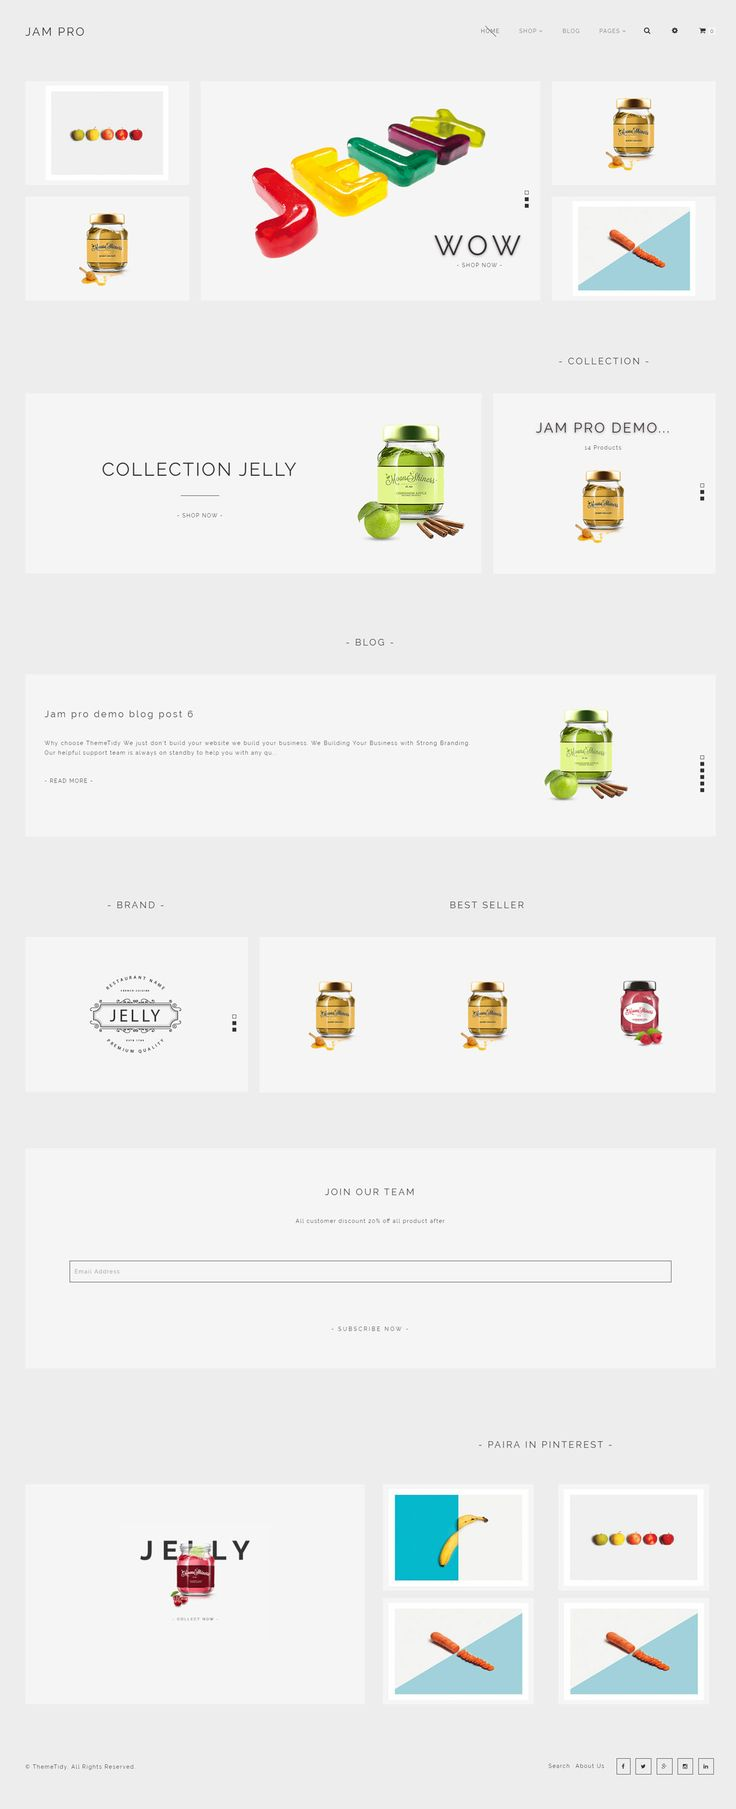 Jam Pro – Food Store Responsive eCommerce Shopify Theme Download Link: https://www.themetidy.com/item/jam-pro-food-store-responsive-ecommerce-shopify-theme/ #jam #jelly #bread #foodshopifythemes #drinkshopifythemes #cafesshopifythemes #restaurantsshopifythemes #fresh #event #party #tasty #healthy #order #recipes #delicious #bar #tablebooking #cookingstore #eat #chef #organicshop #delivery #pub #menu #bootstrapshopifythemes #ecommerceshopifythemes #responsiveshopifythemes